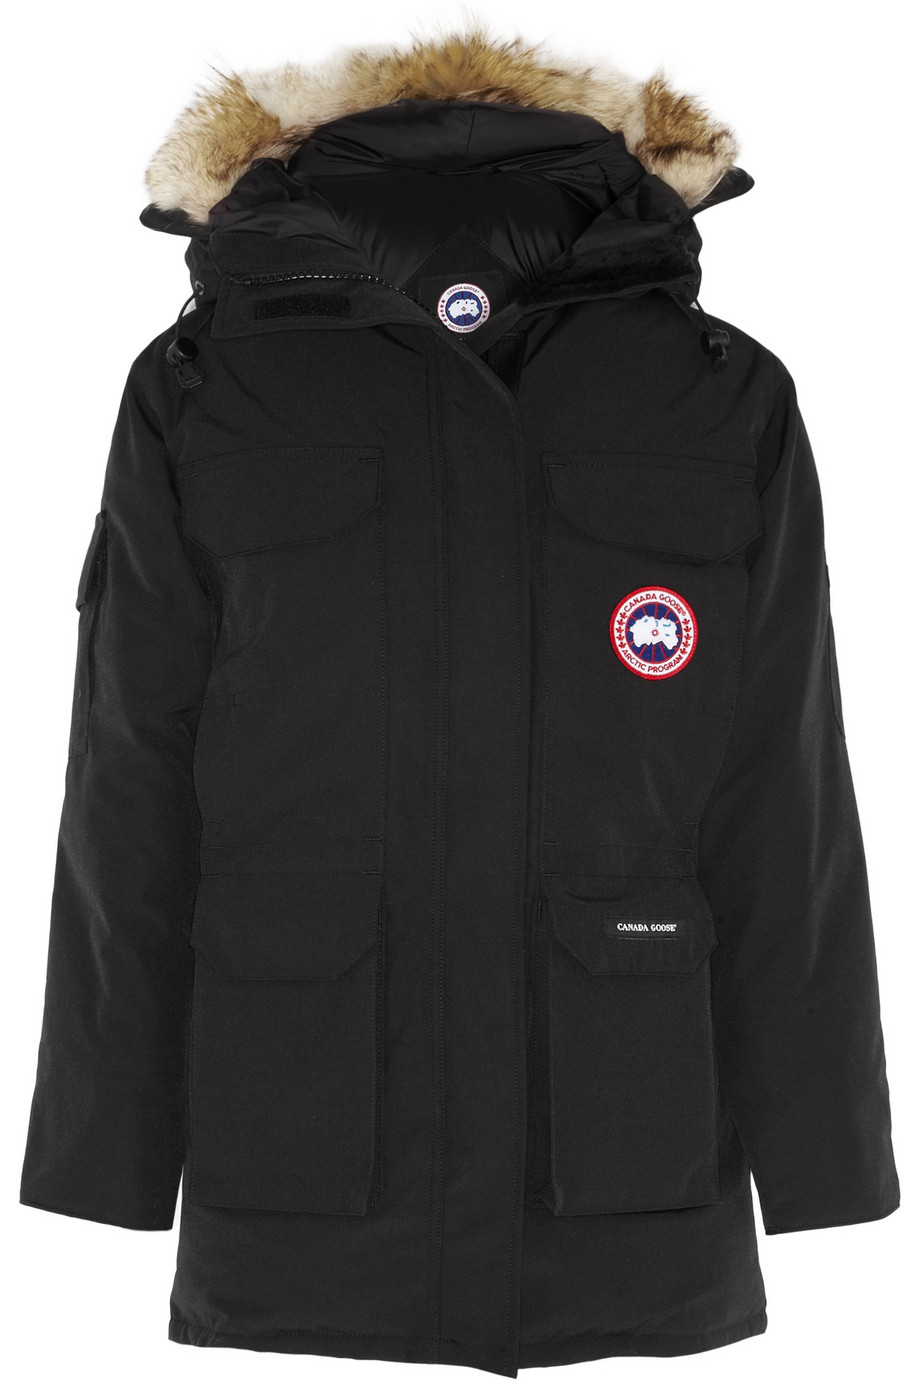 Canada Goose mens outlet cheap - Wholesale Cheap Canada Goose Ny Jacket Big Supply Outlet Online